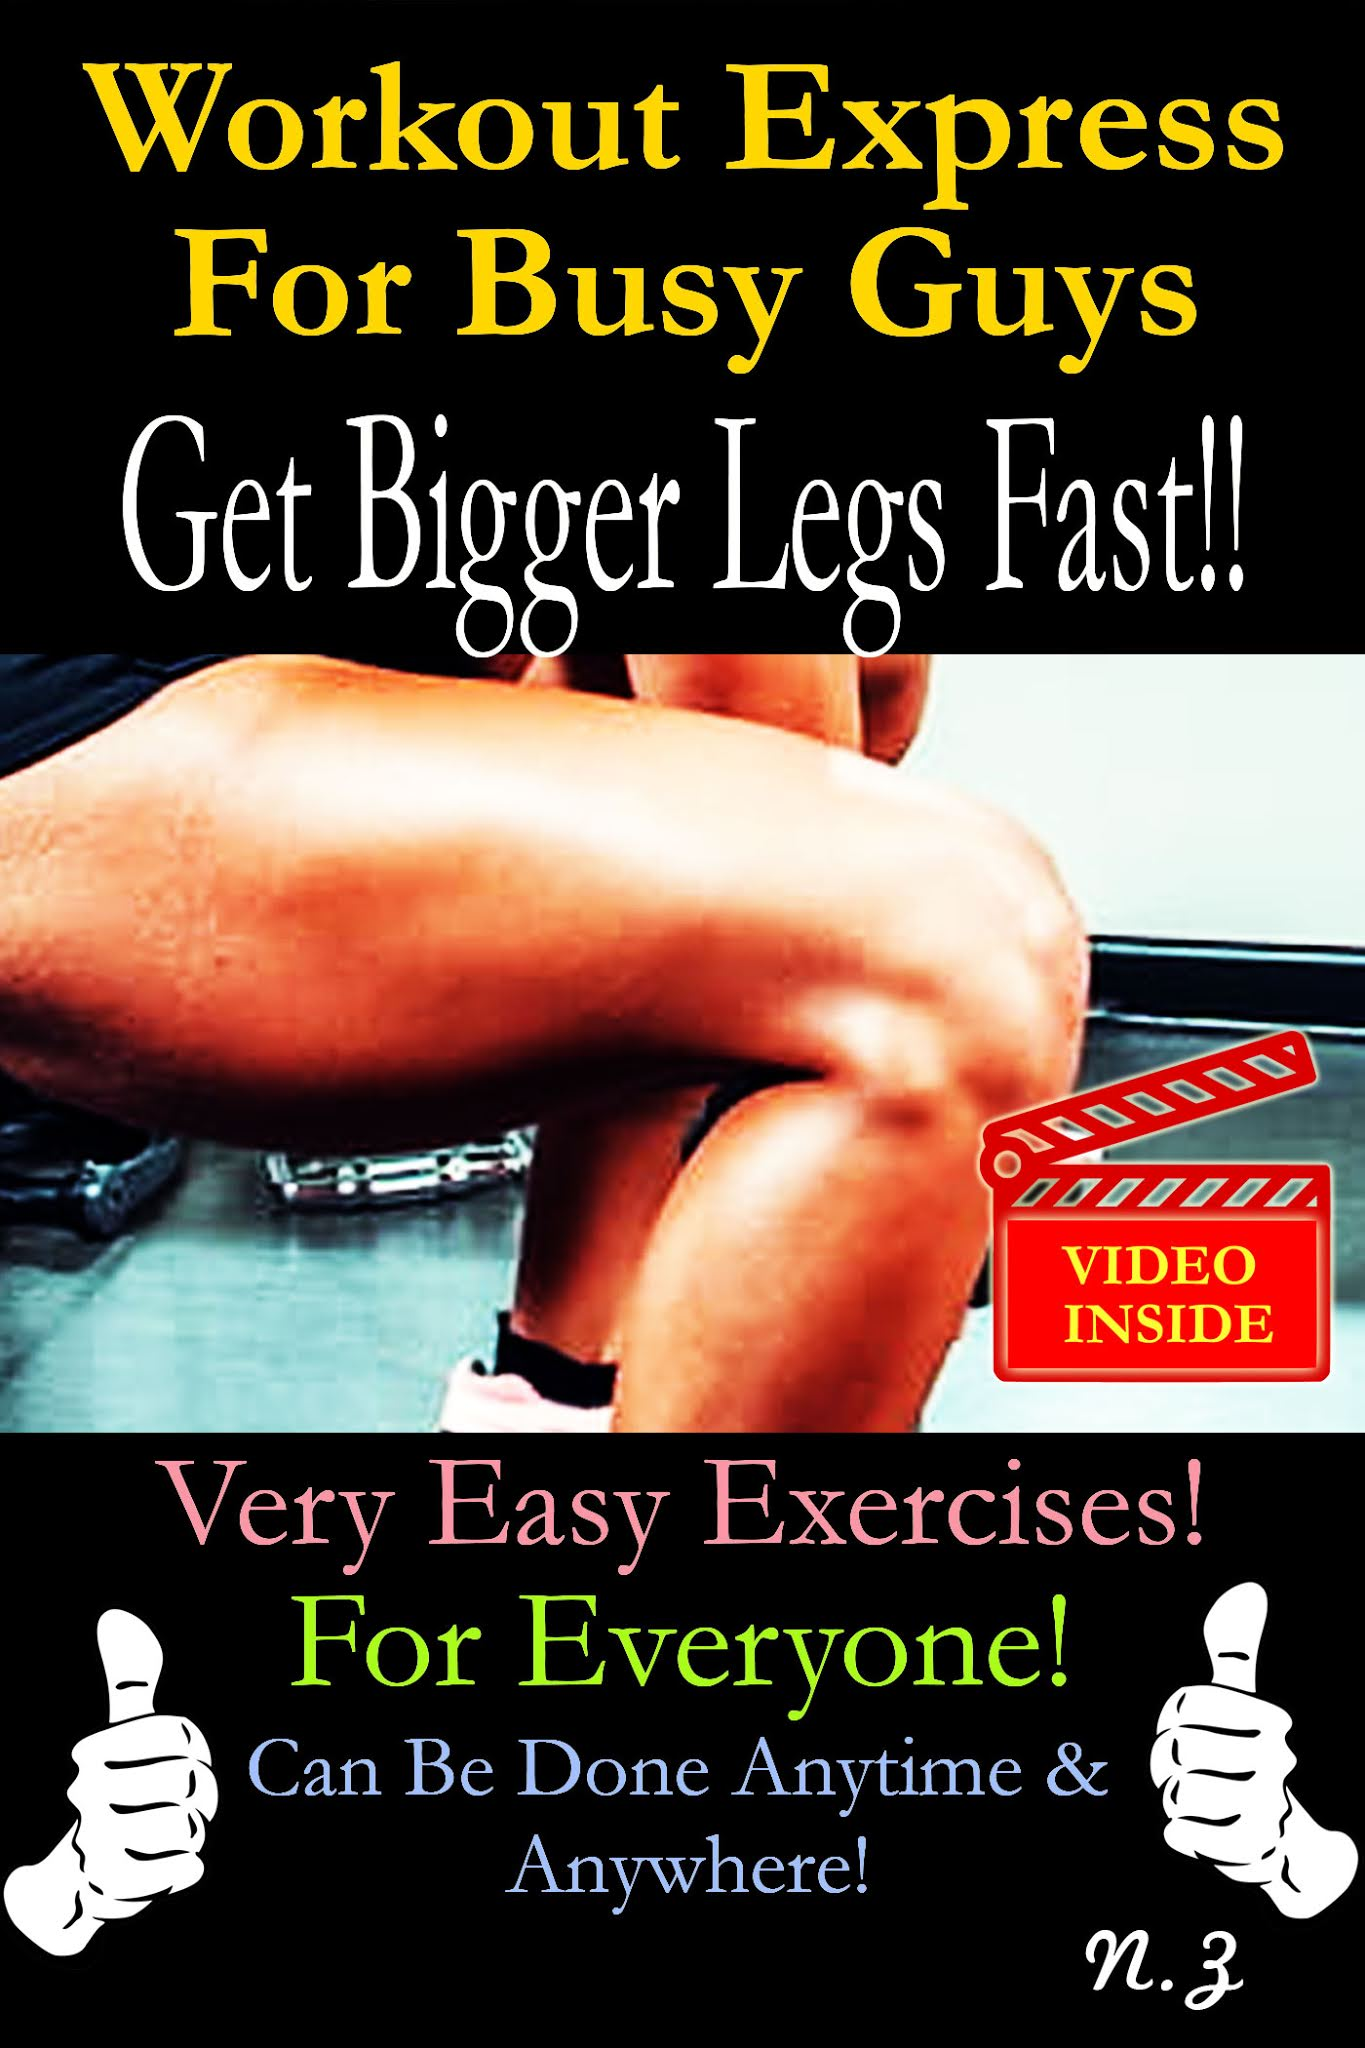 Workout Express For Busy Guys: Get A Bigger Legs Fast!!